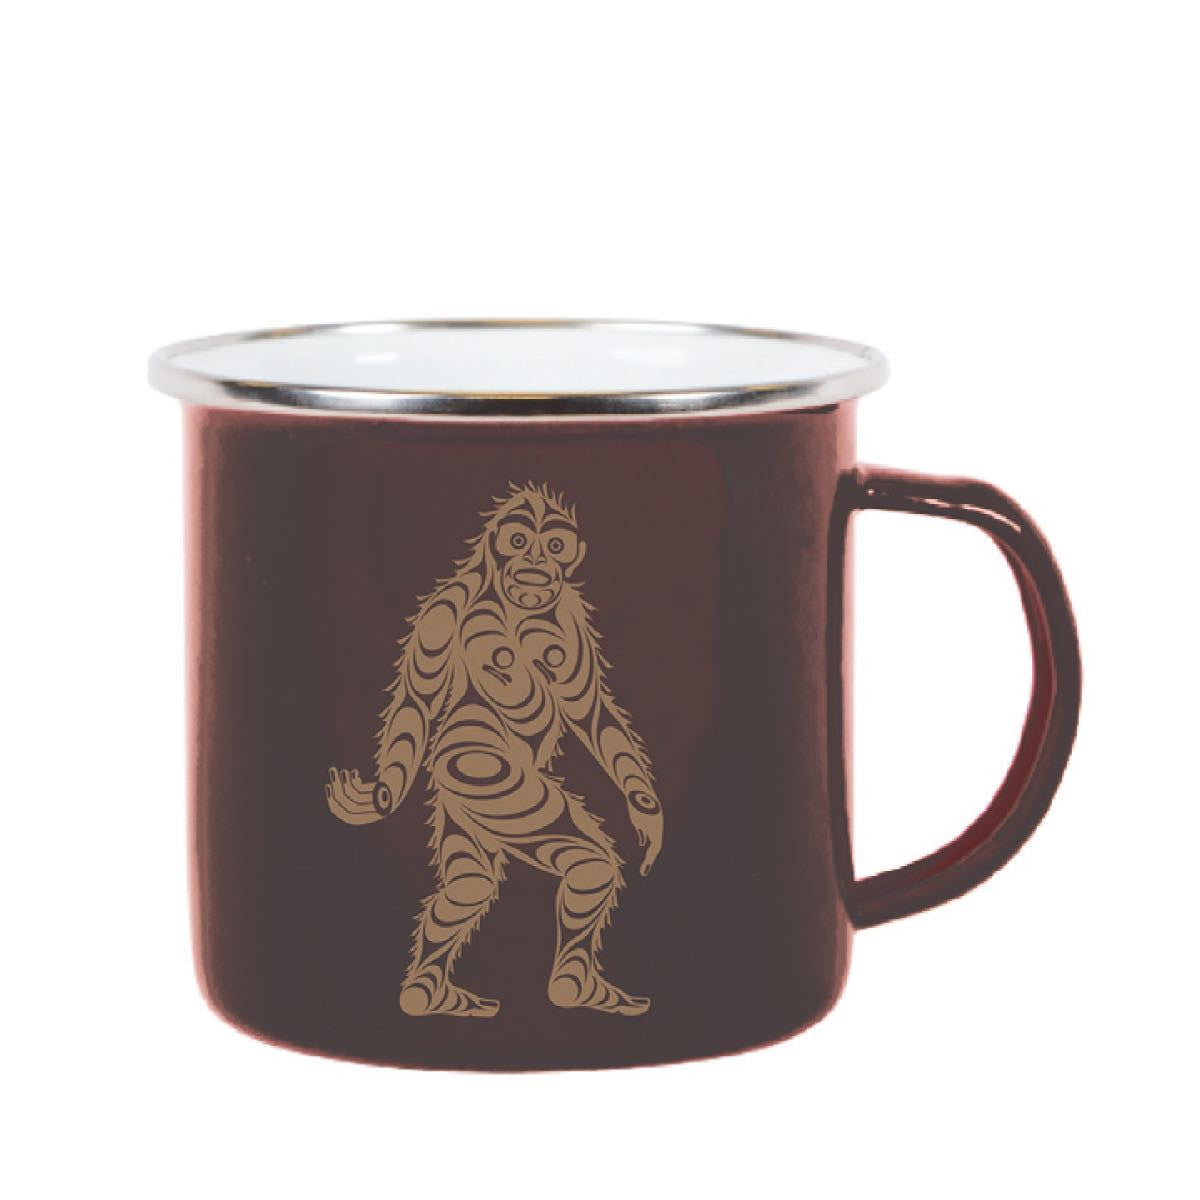 enamel mug tin mug sasquatch big foot perfect gift unique gift